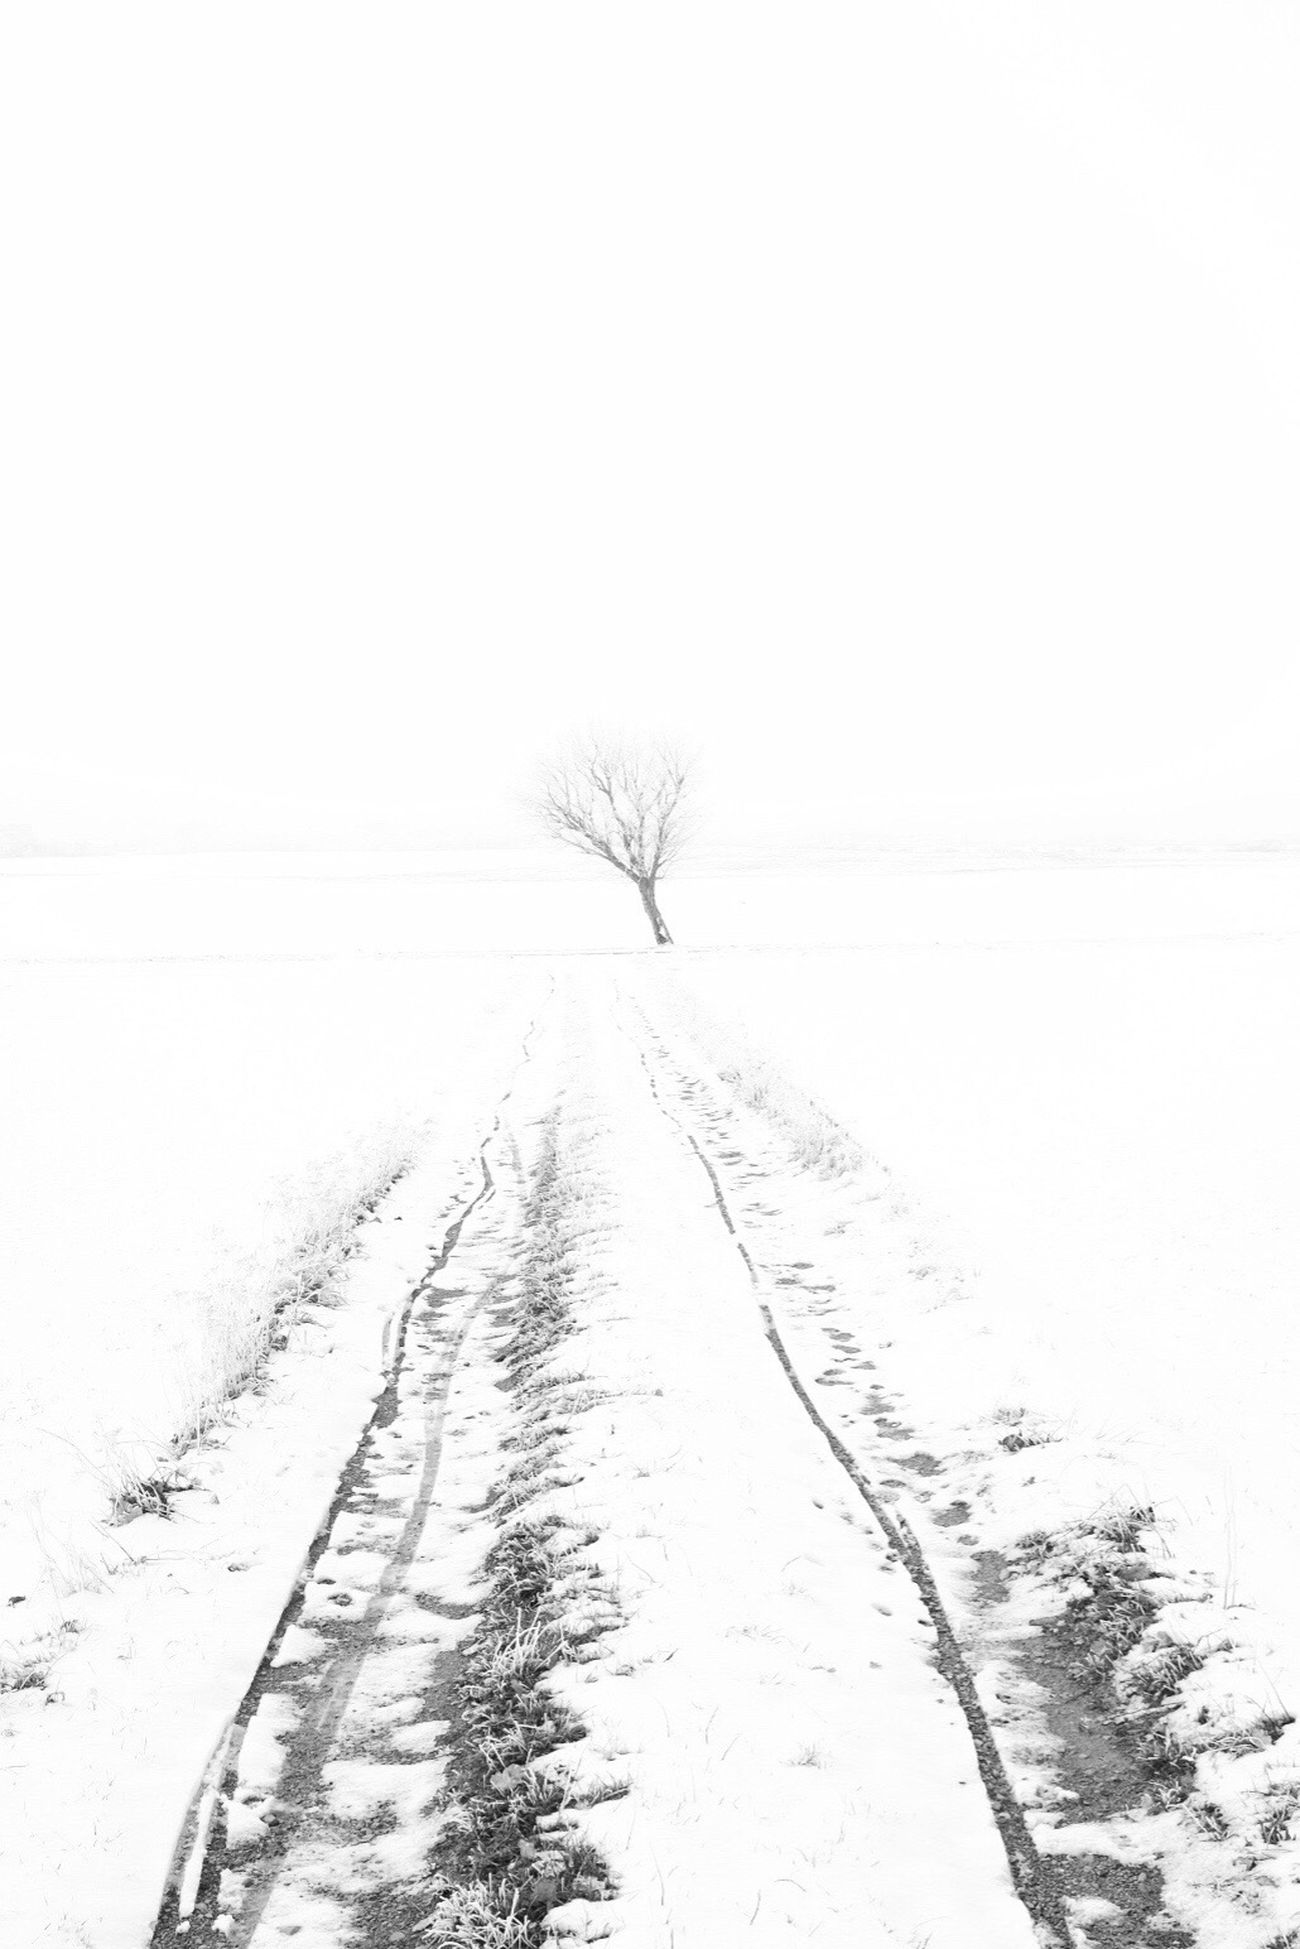 Snow Winter Landscape Outdoors Monochrome Shootermag EyeEm Best Shots - Black + White Black And White Bw_collection Tree